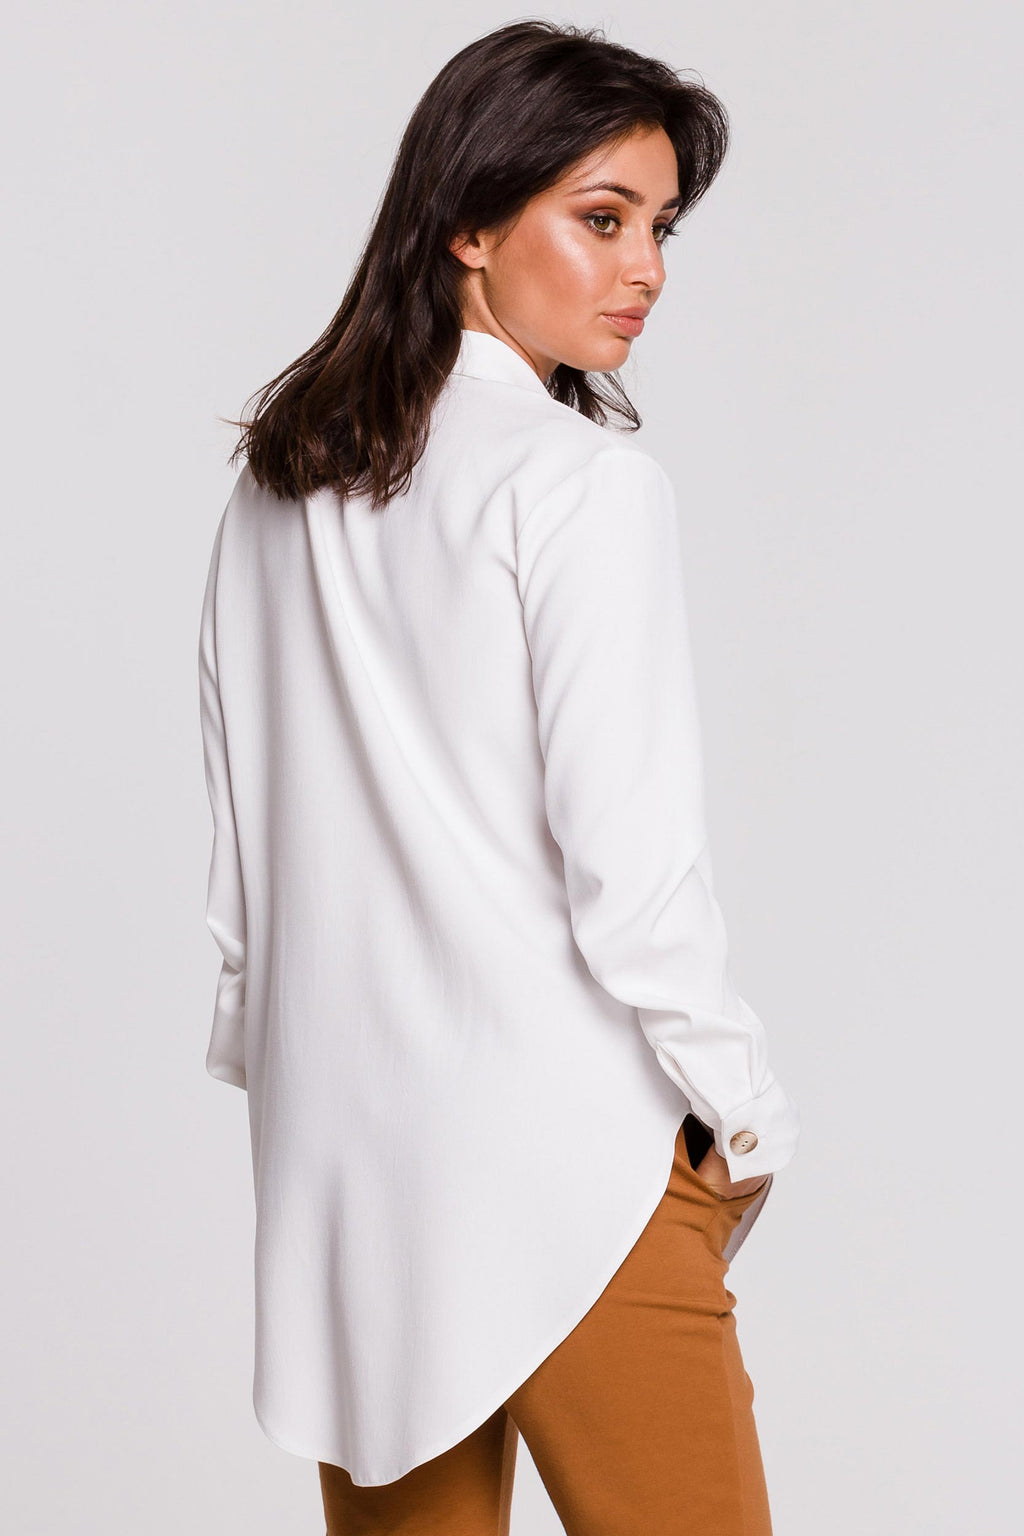 High Low White Shirt With Wooden Buttons - So Chic Boutique